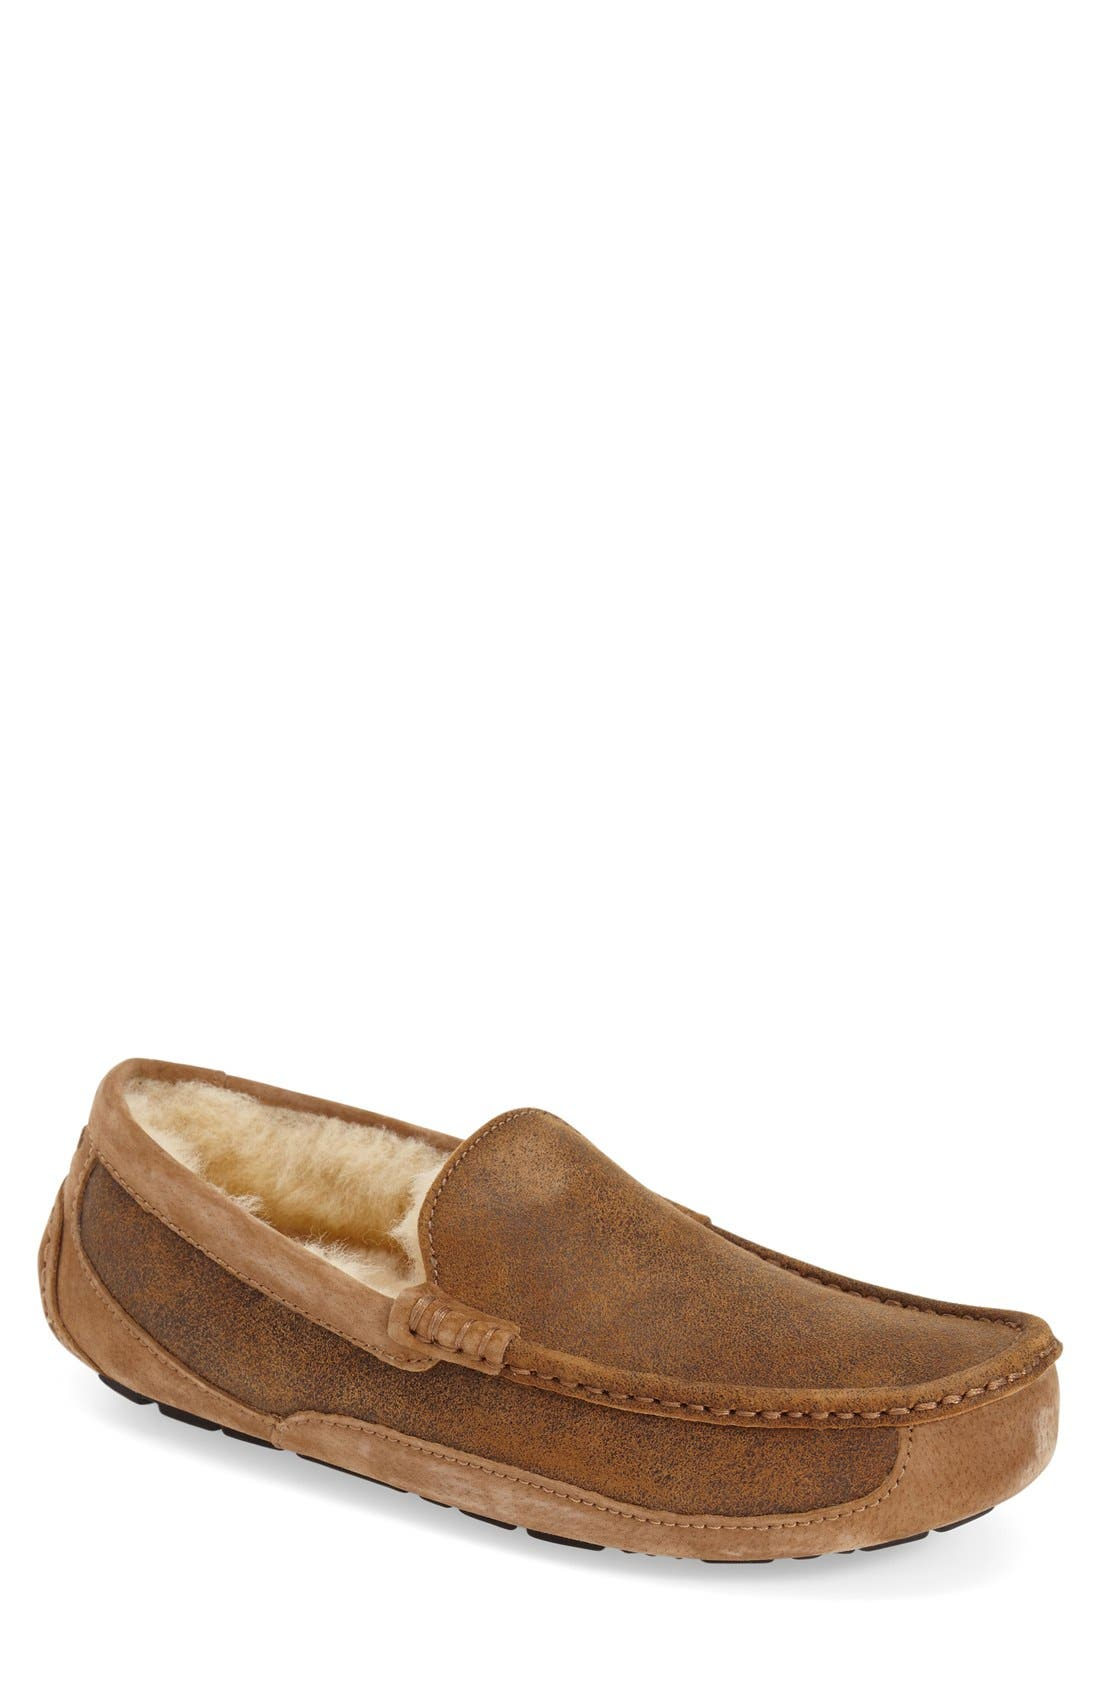 Main Image - UGG® Ascot Bomber Slipper (Men)